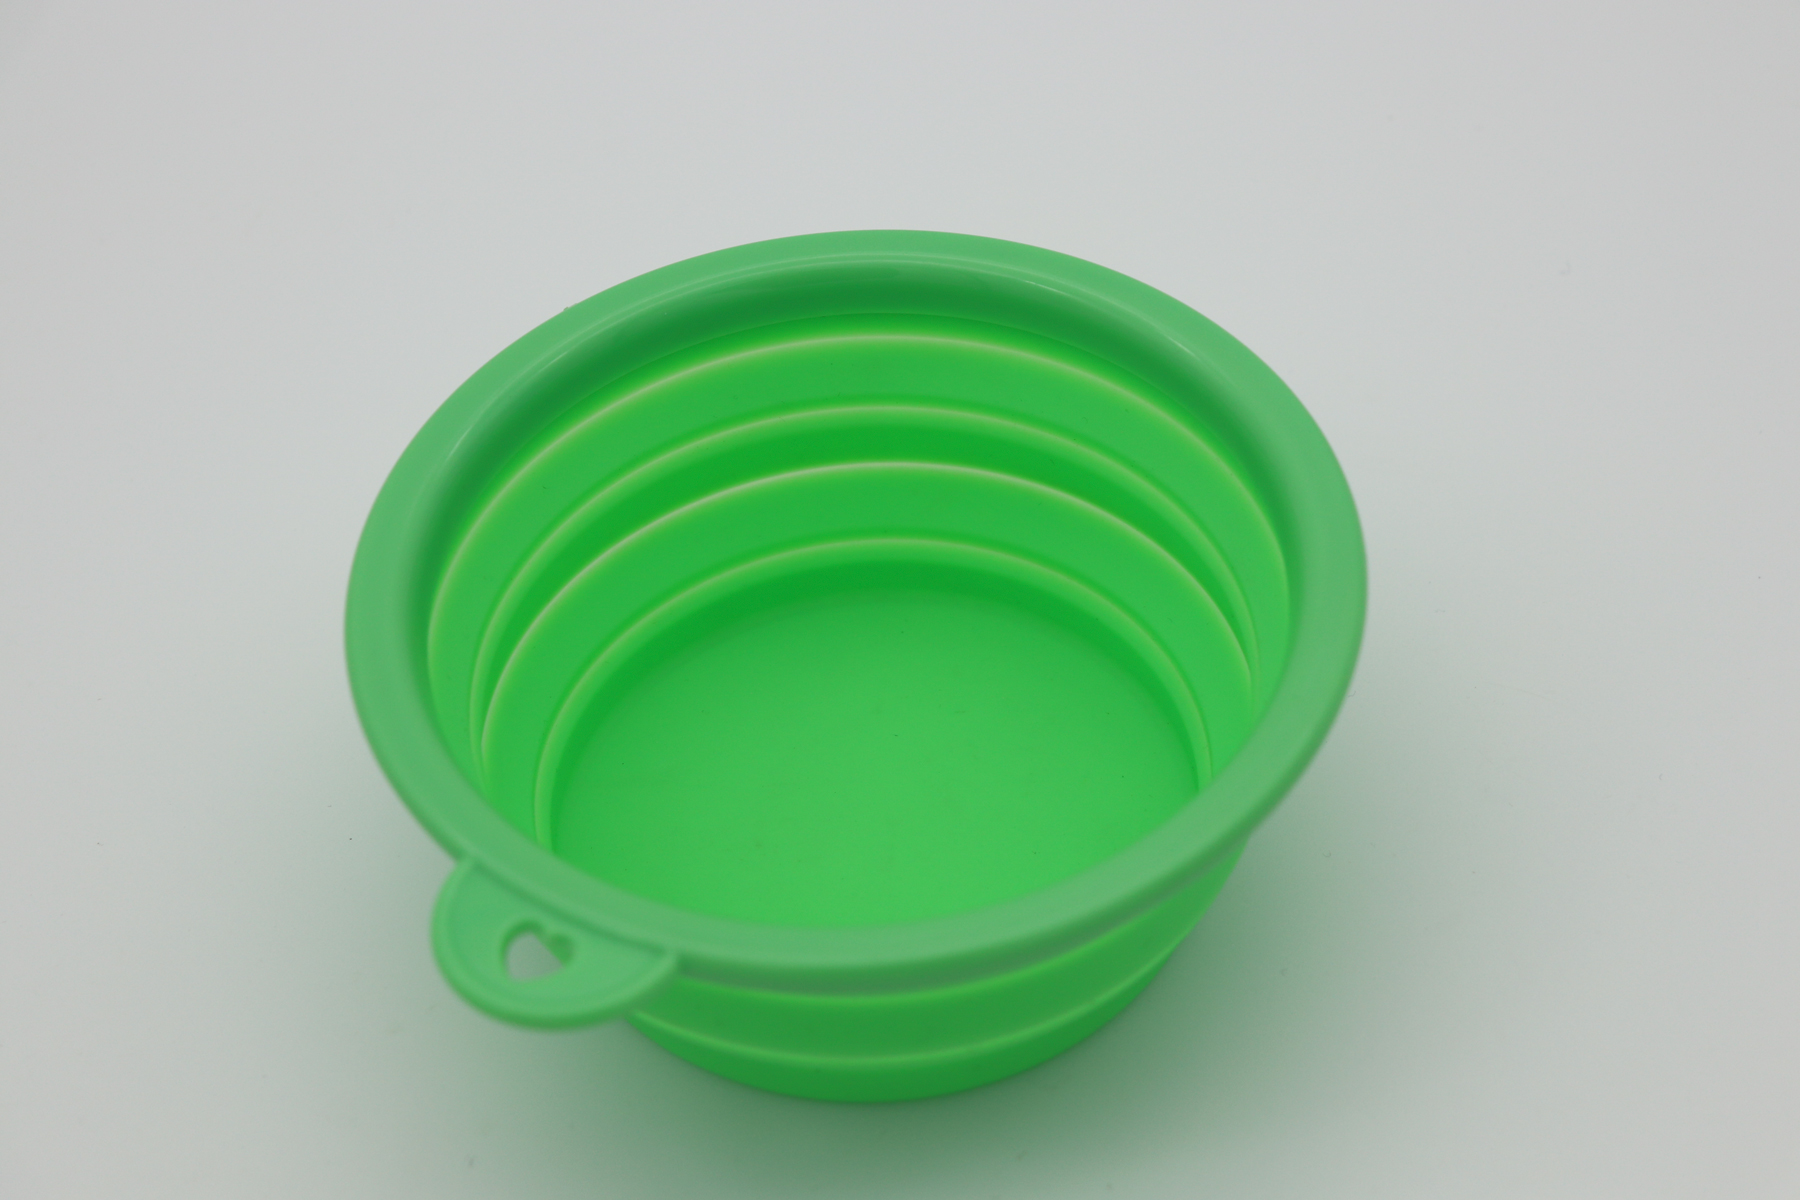 http://www.refinehksilicone.cn/data/images/product/20180417100355_442.jpg